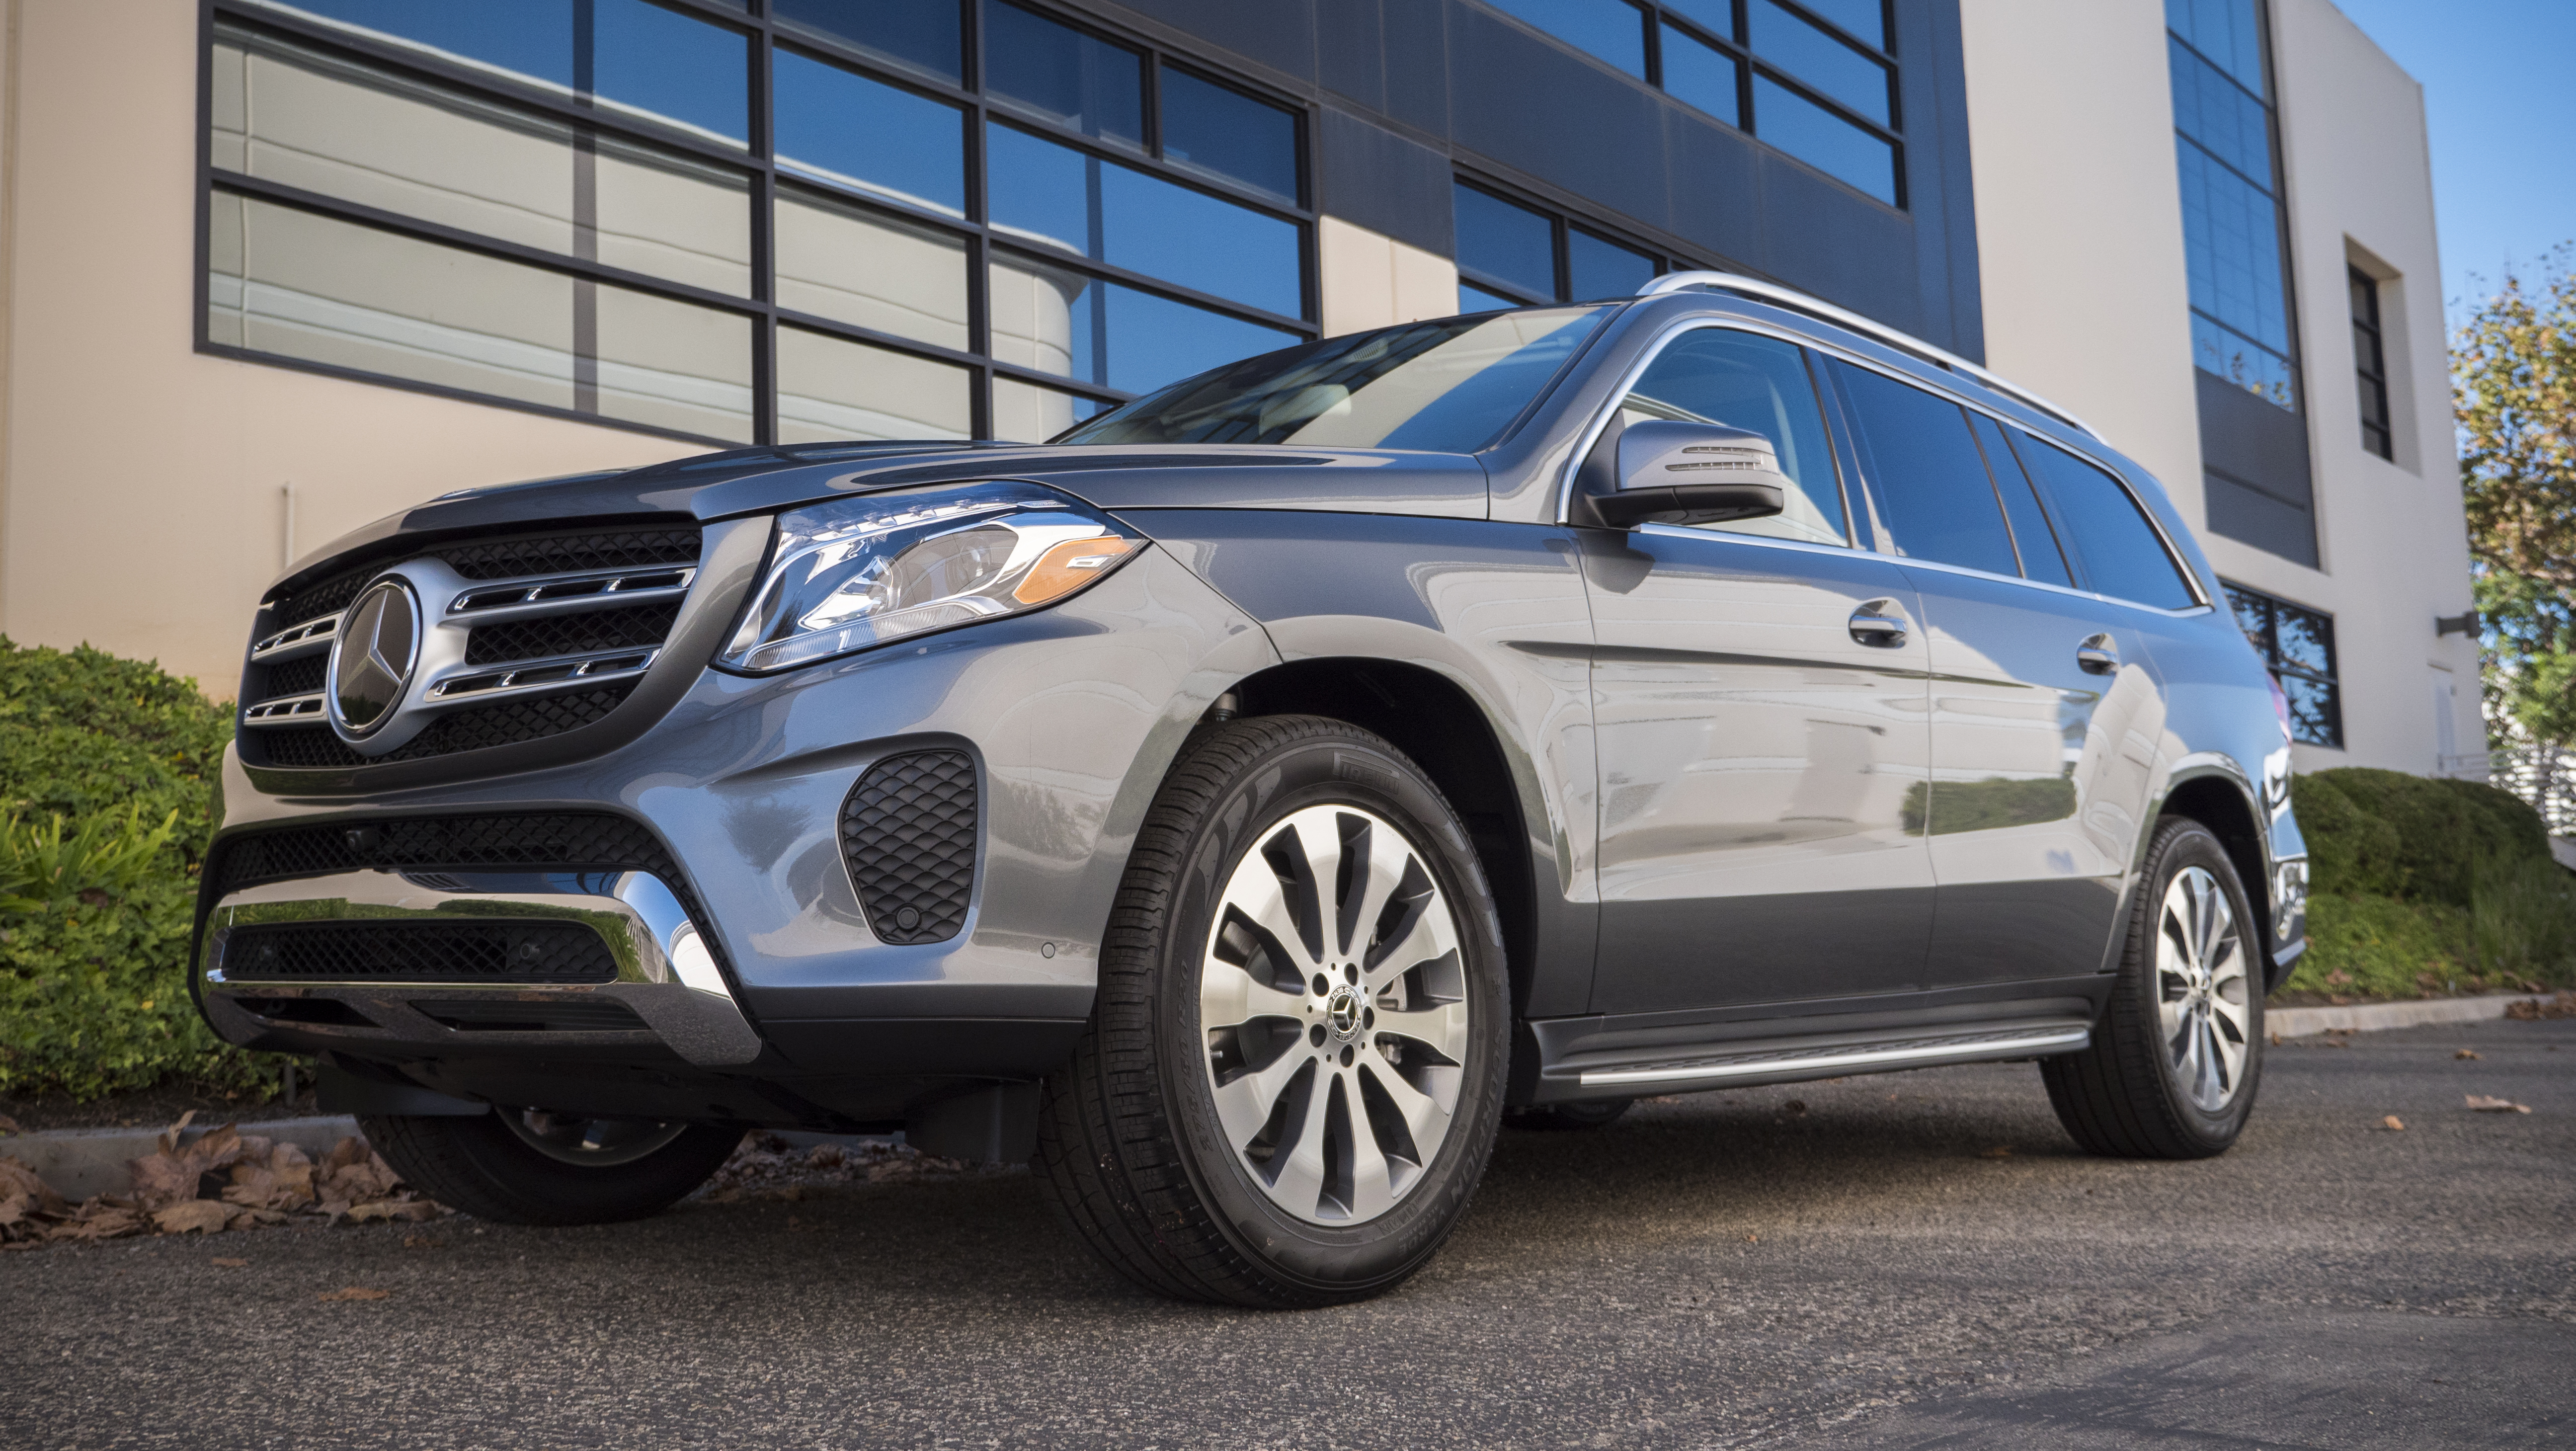 2018 Mercedes Benz GLS450 4MATIC